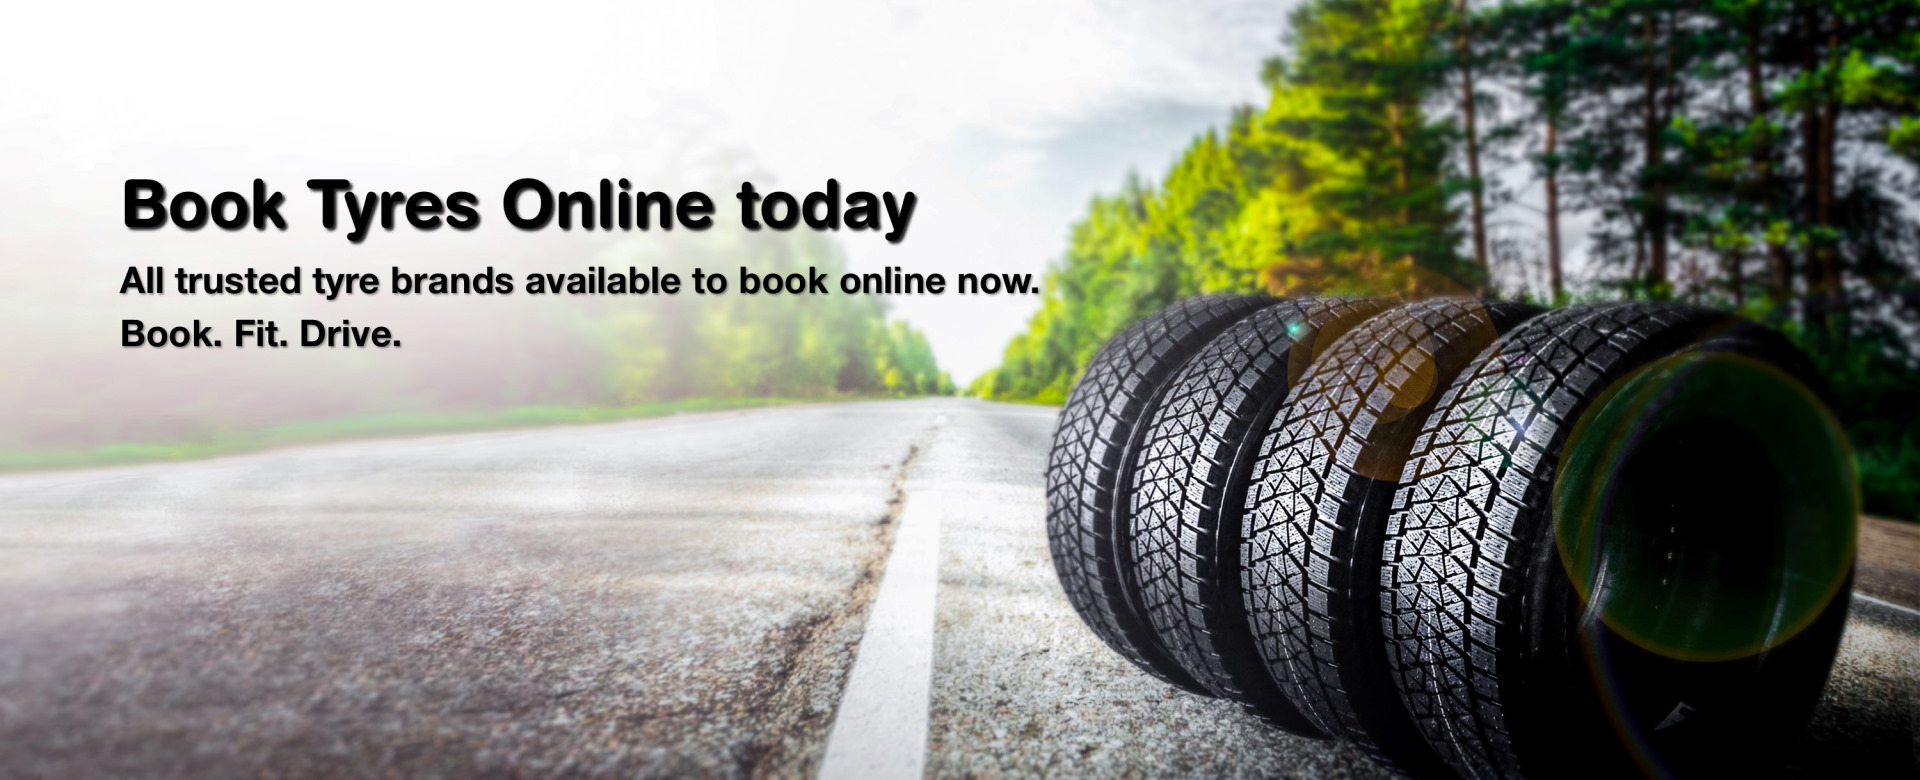 INO-Home-Banner-Tyres